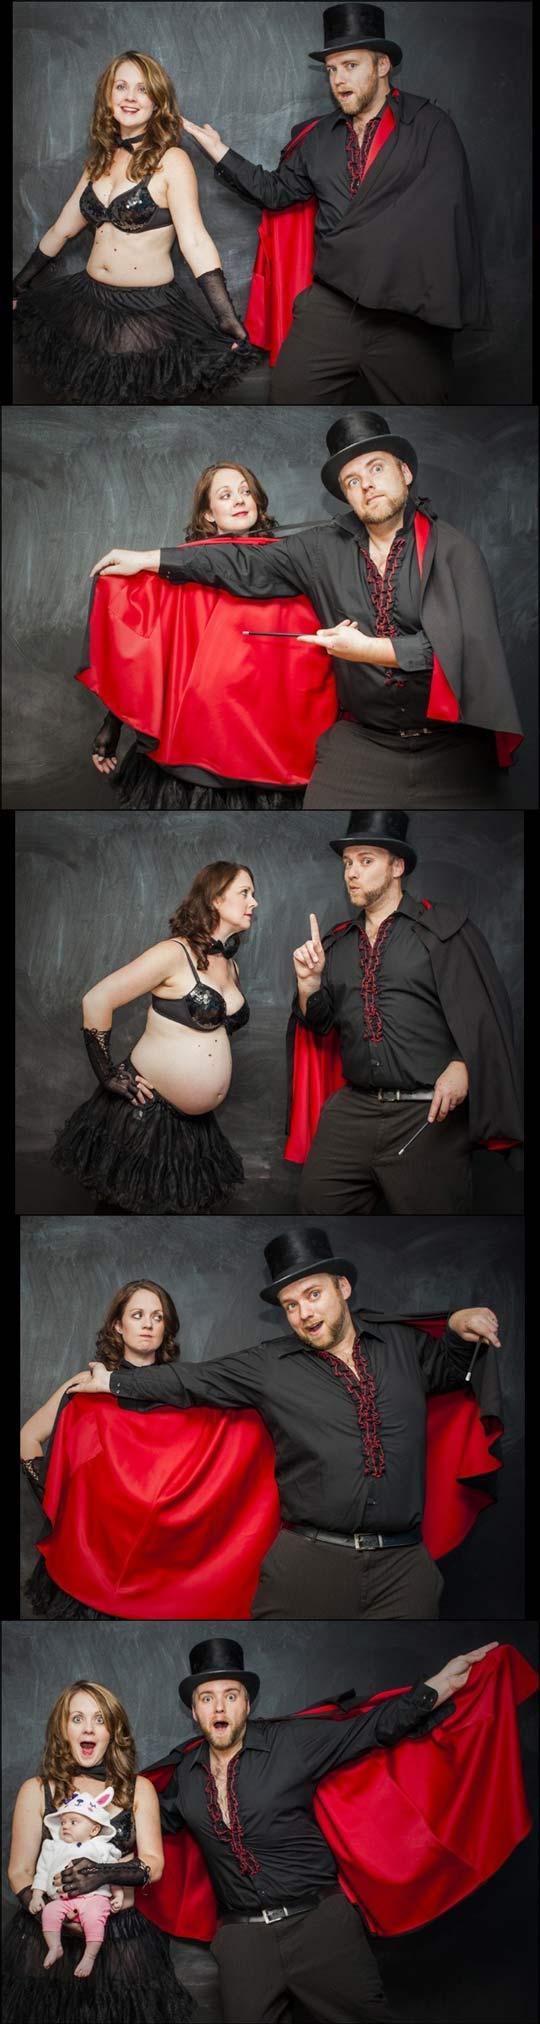 funny-picture-dad-magician-pregnancy-announcement